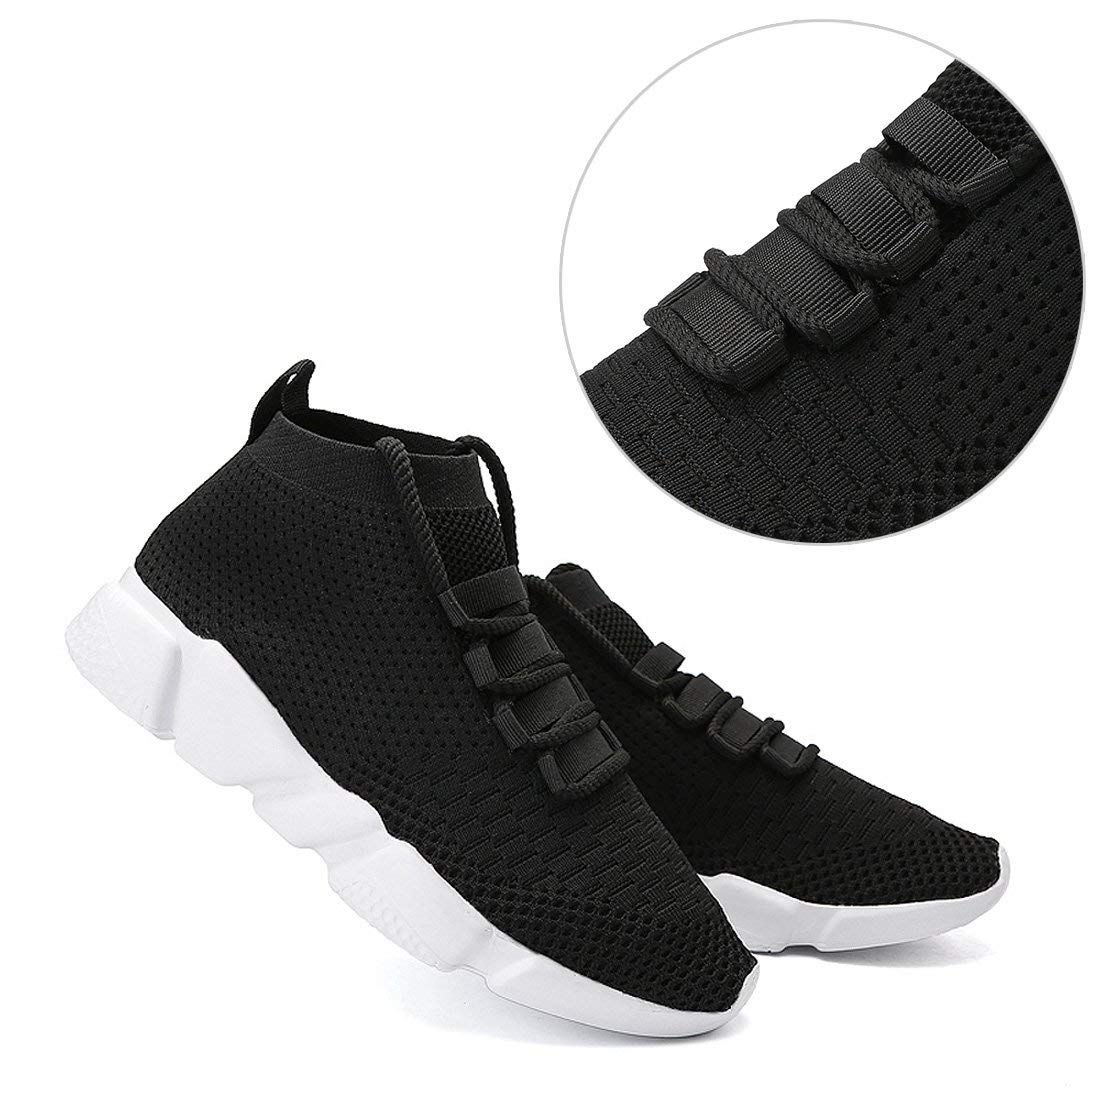 de3bfda472262 Amazon.com | Mevlzz Mens Casual Athletic Sneakers Knit Running Shoes ...